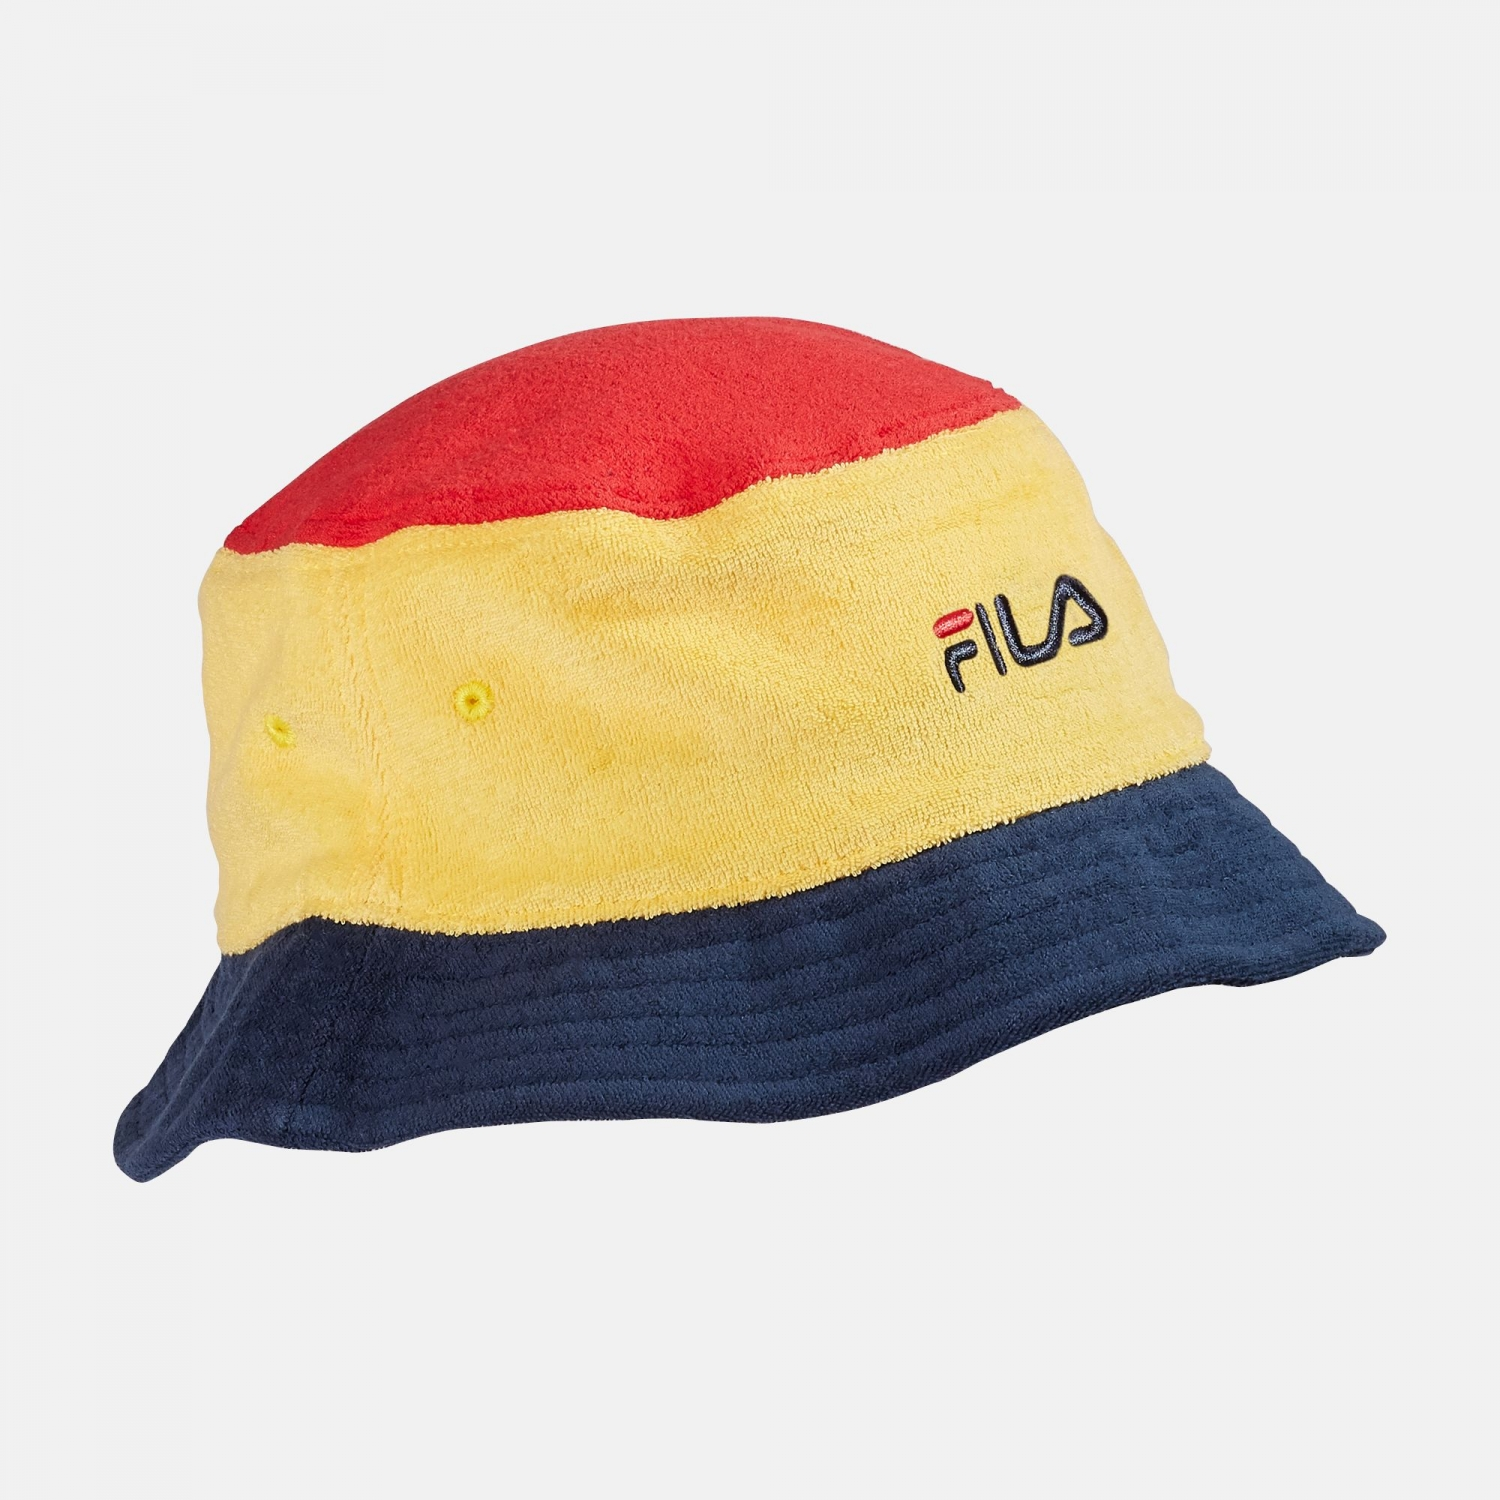 Fila Blocked Bucket Hat red-yellow-navy Bild 1